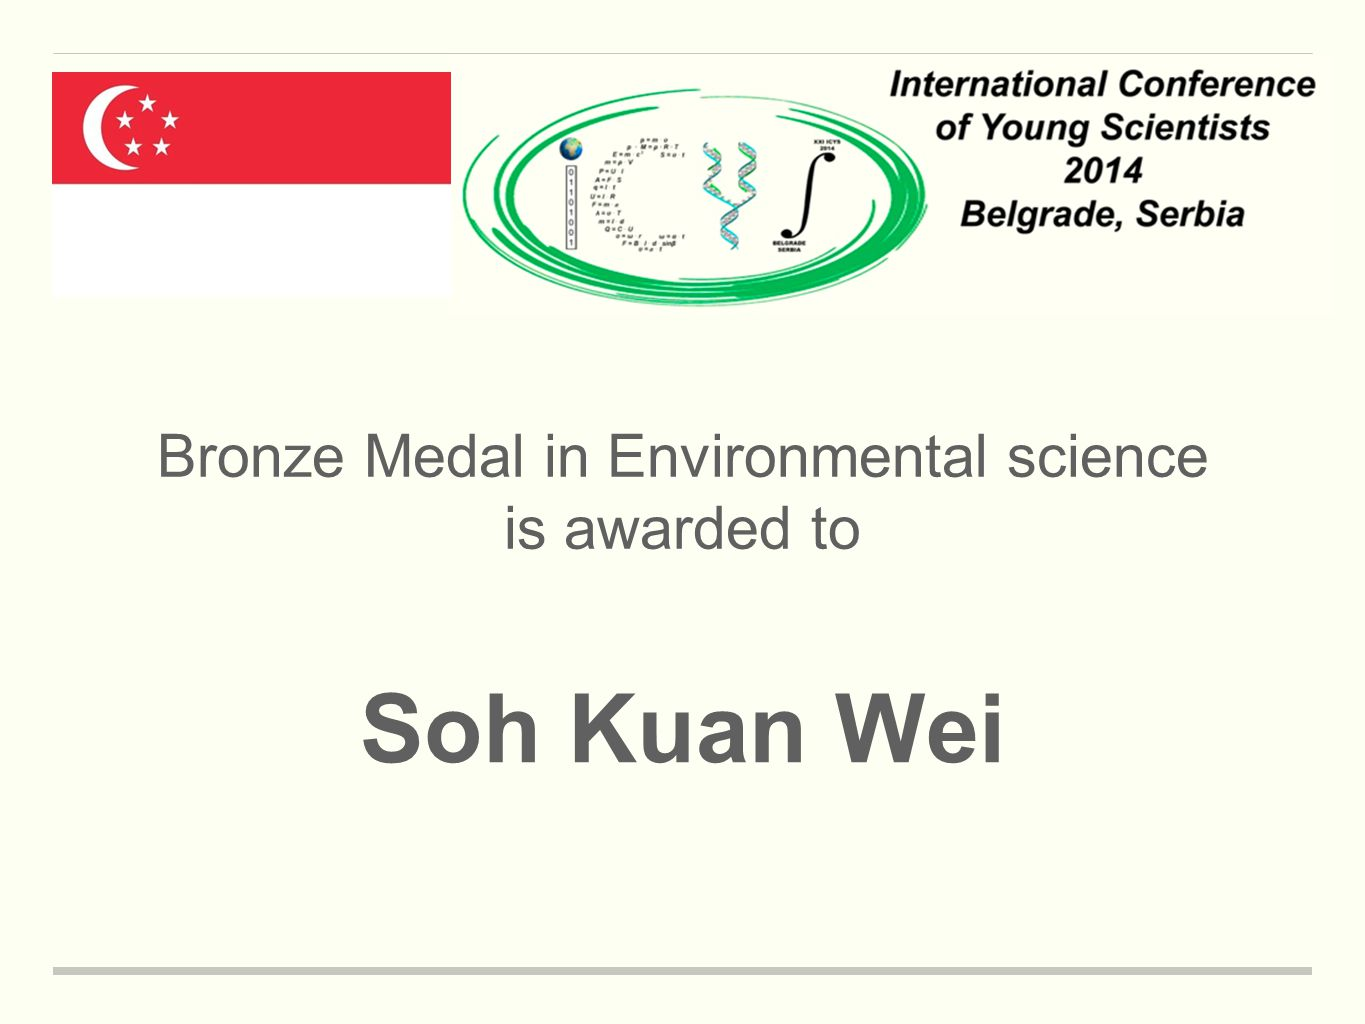 Bronze Medal in Environmental science is awarded to Soh Kuan Wei